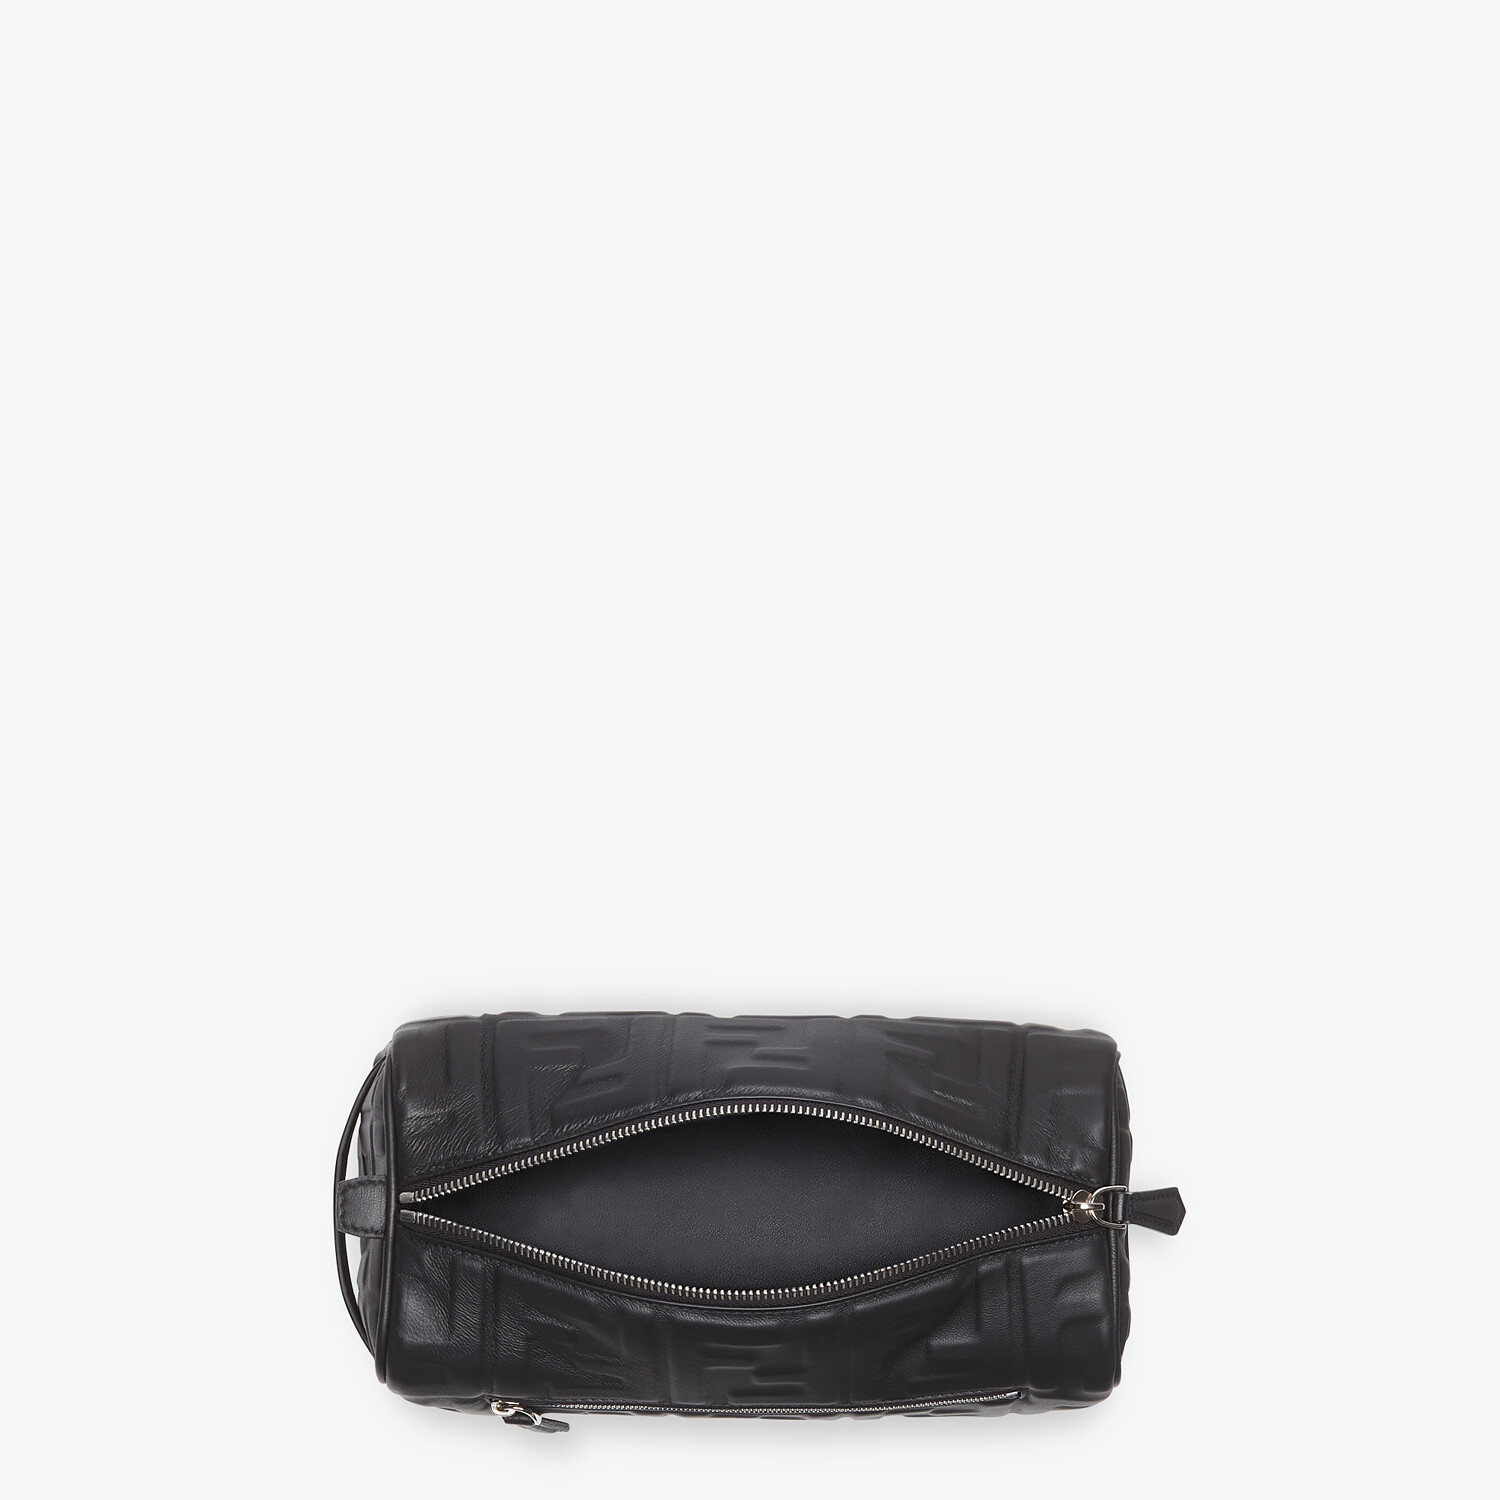 FENDI TRAVEL CASE - Black nappa leather toiletry case - view 4 detail